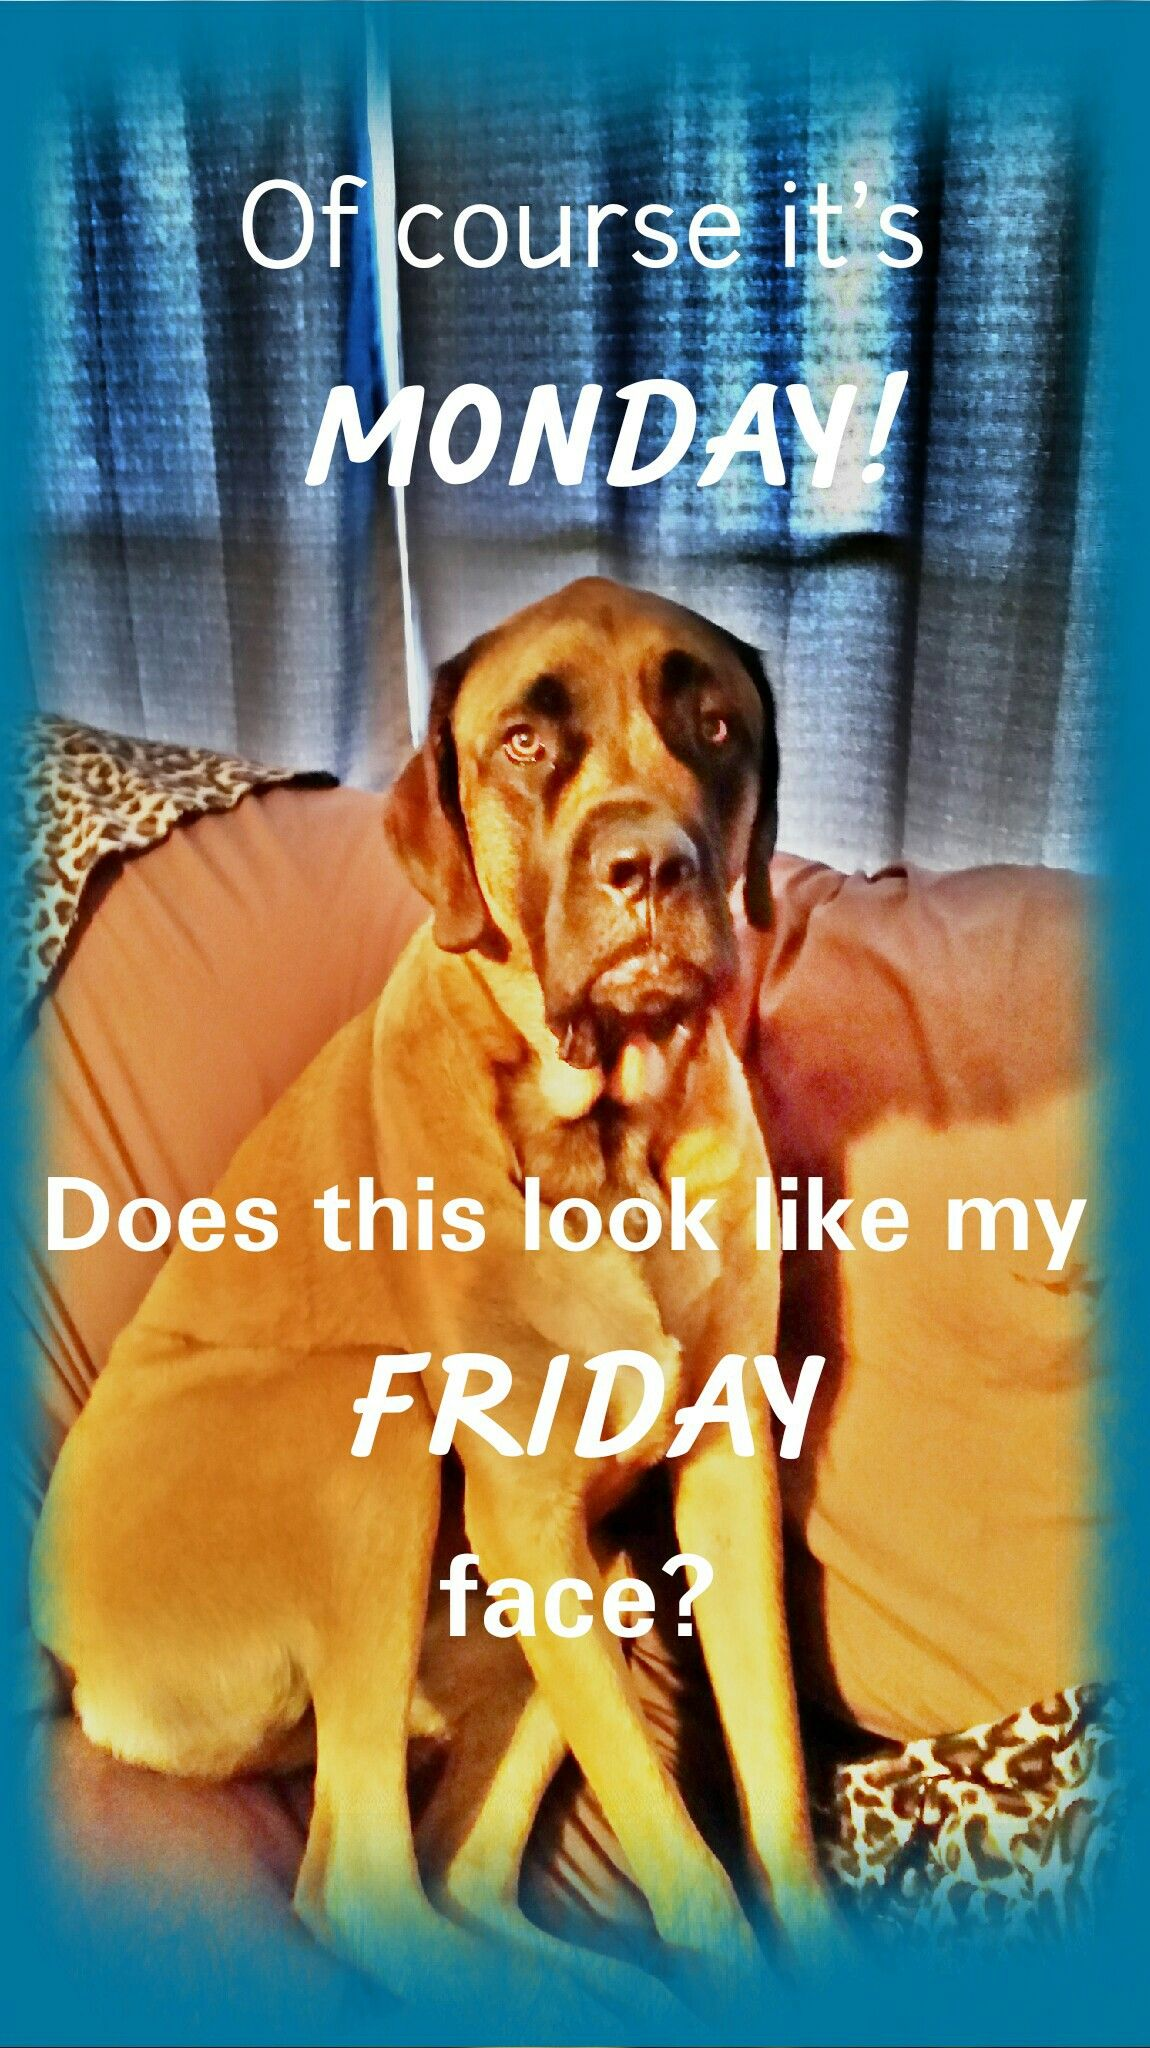 Of course it's Monday! Does this look like my Friday face